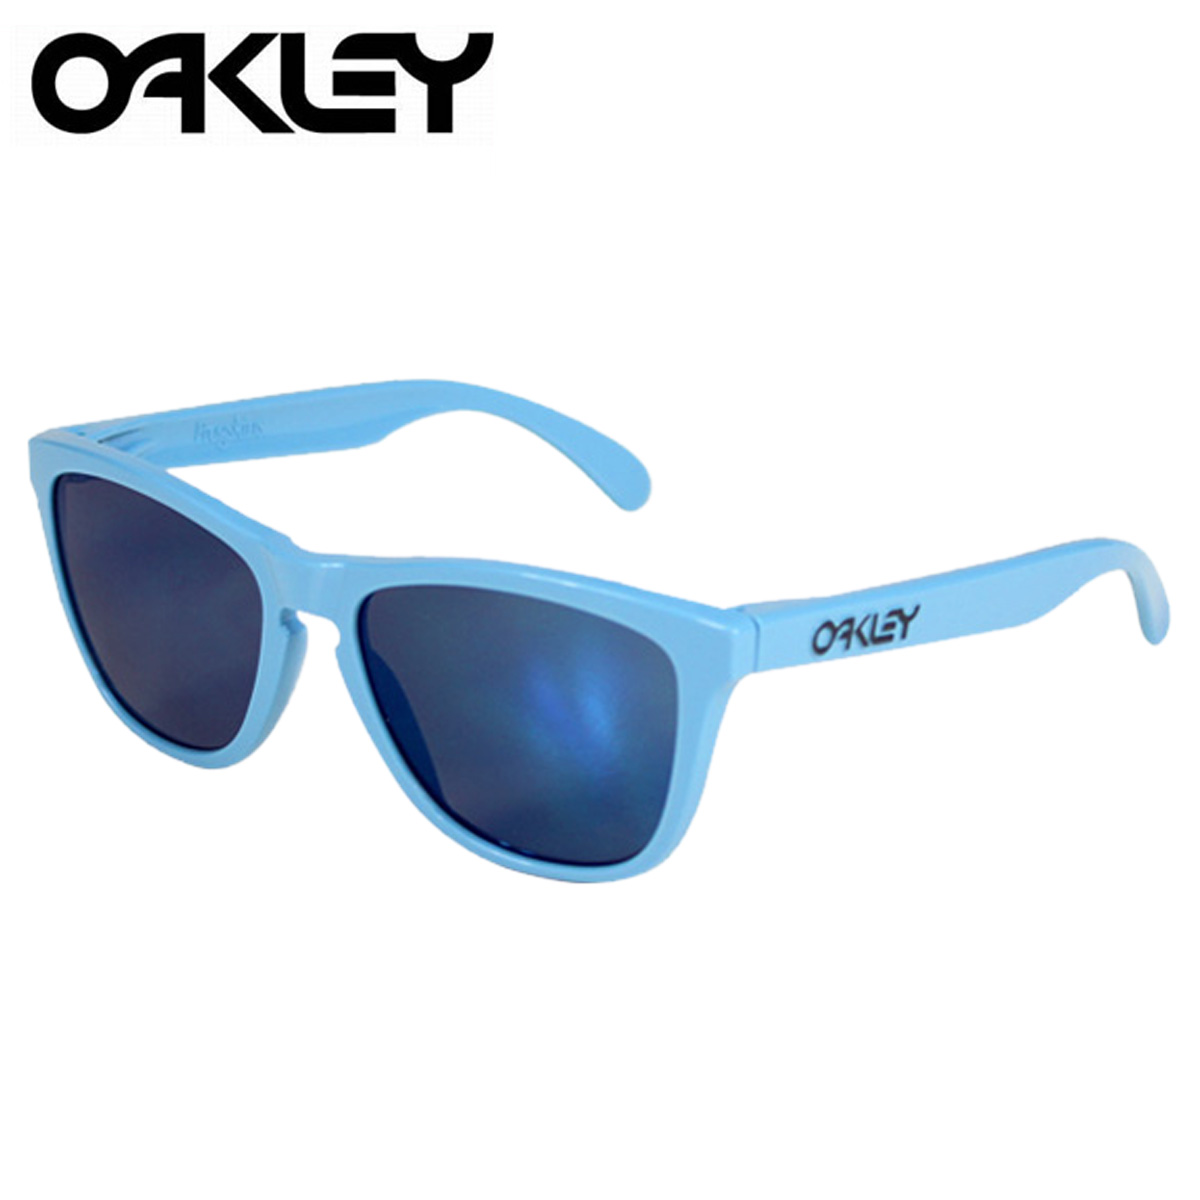 5e327f960a ... closeout whats up sports rakuten global market sold out oakley oakley  sunglasses frogskins special edition heritage